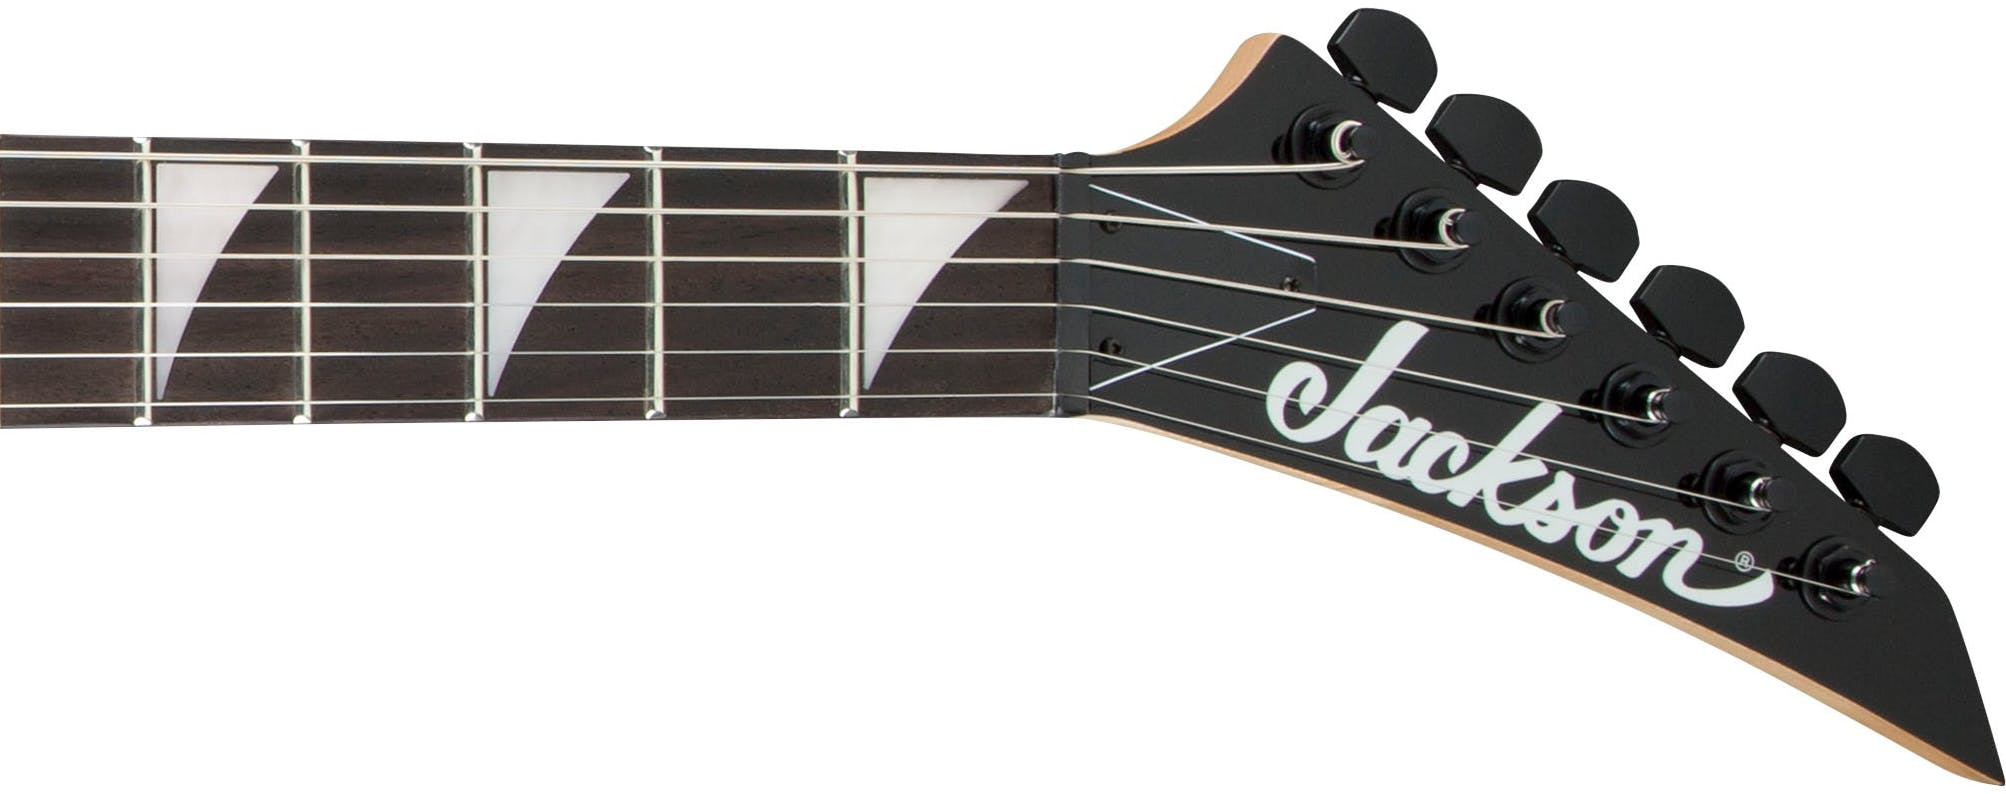 A Jackson Headstock: not a single string passes through its (non-locking) nut without deviation.